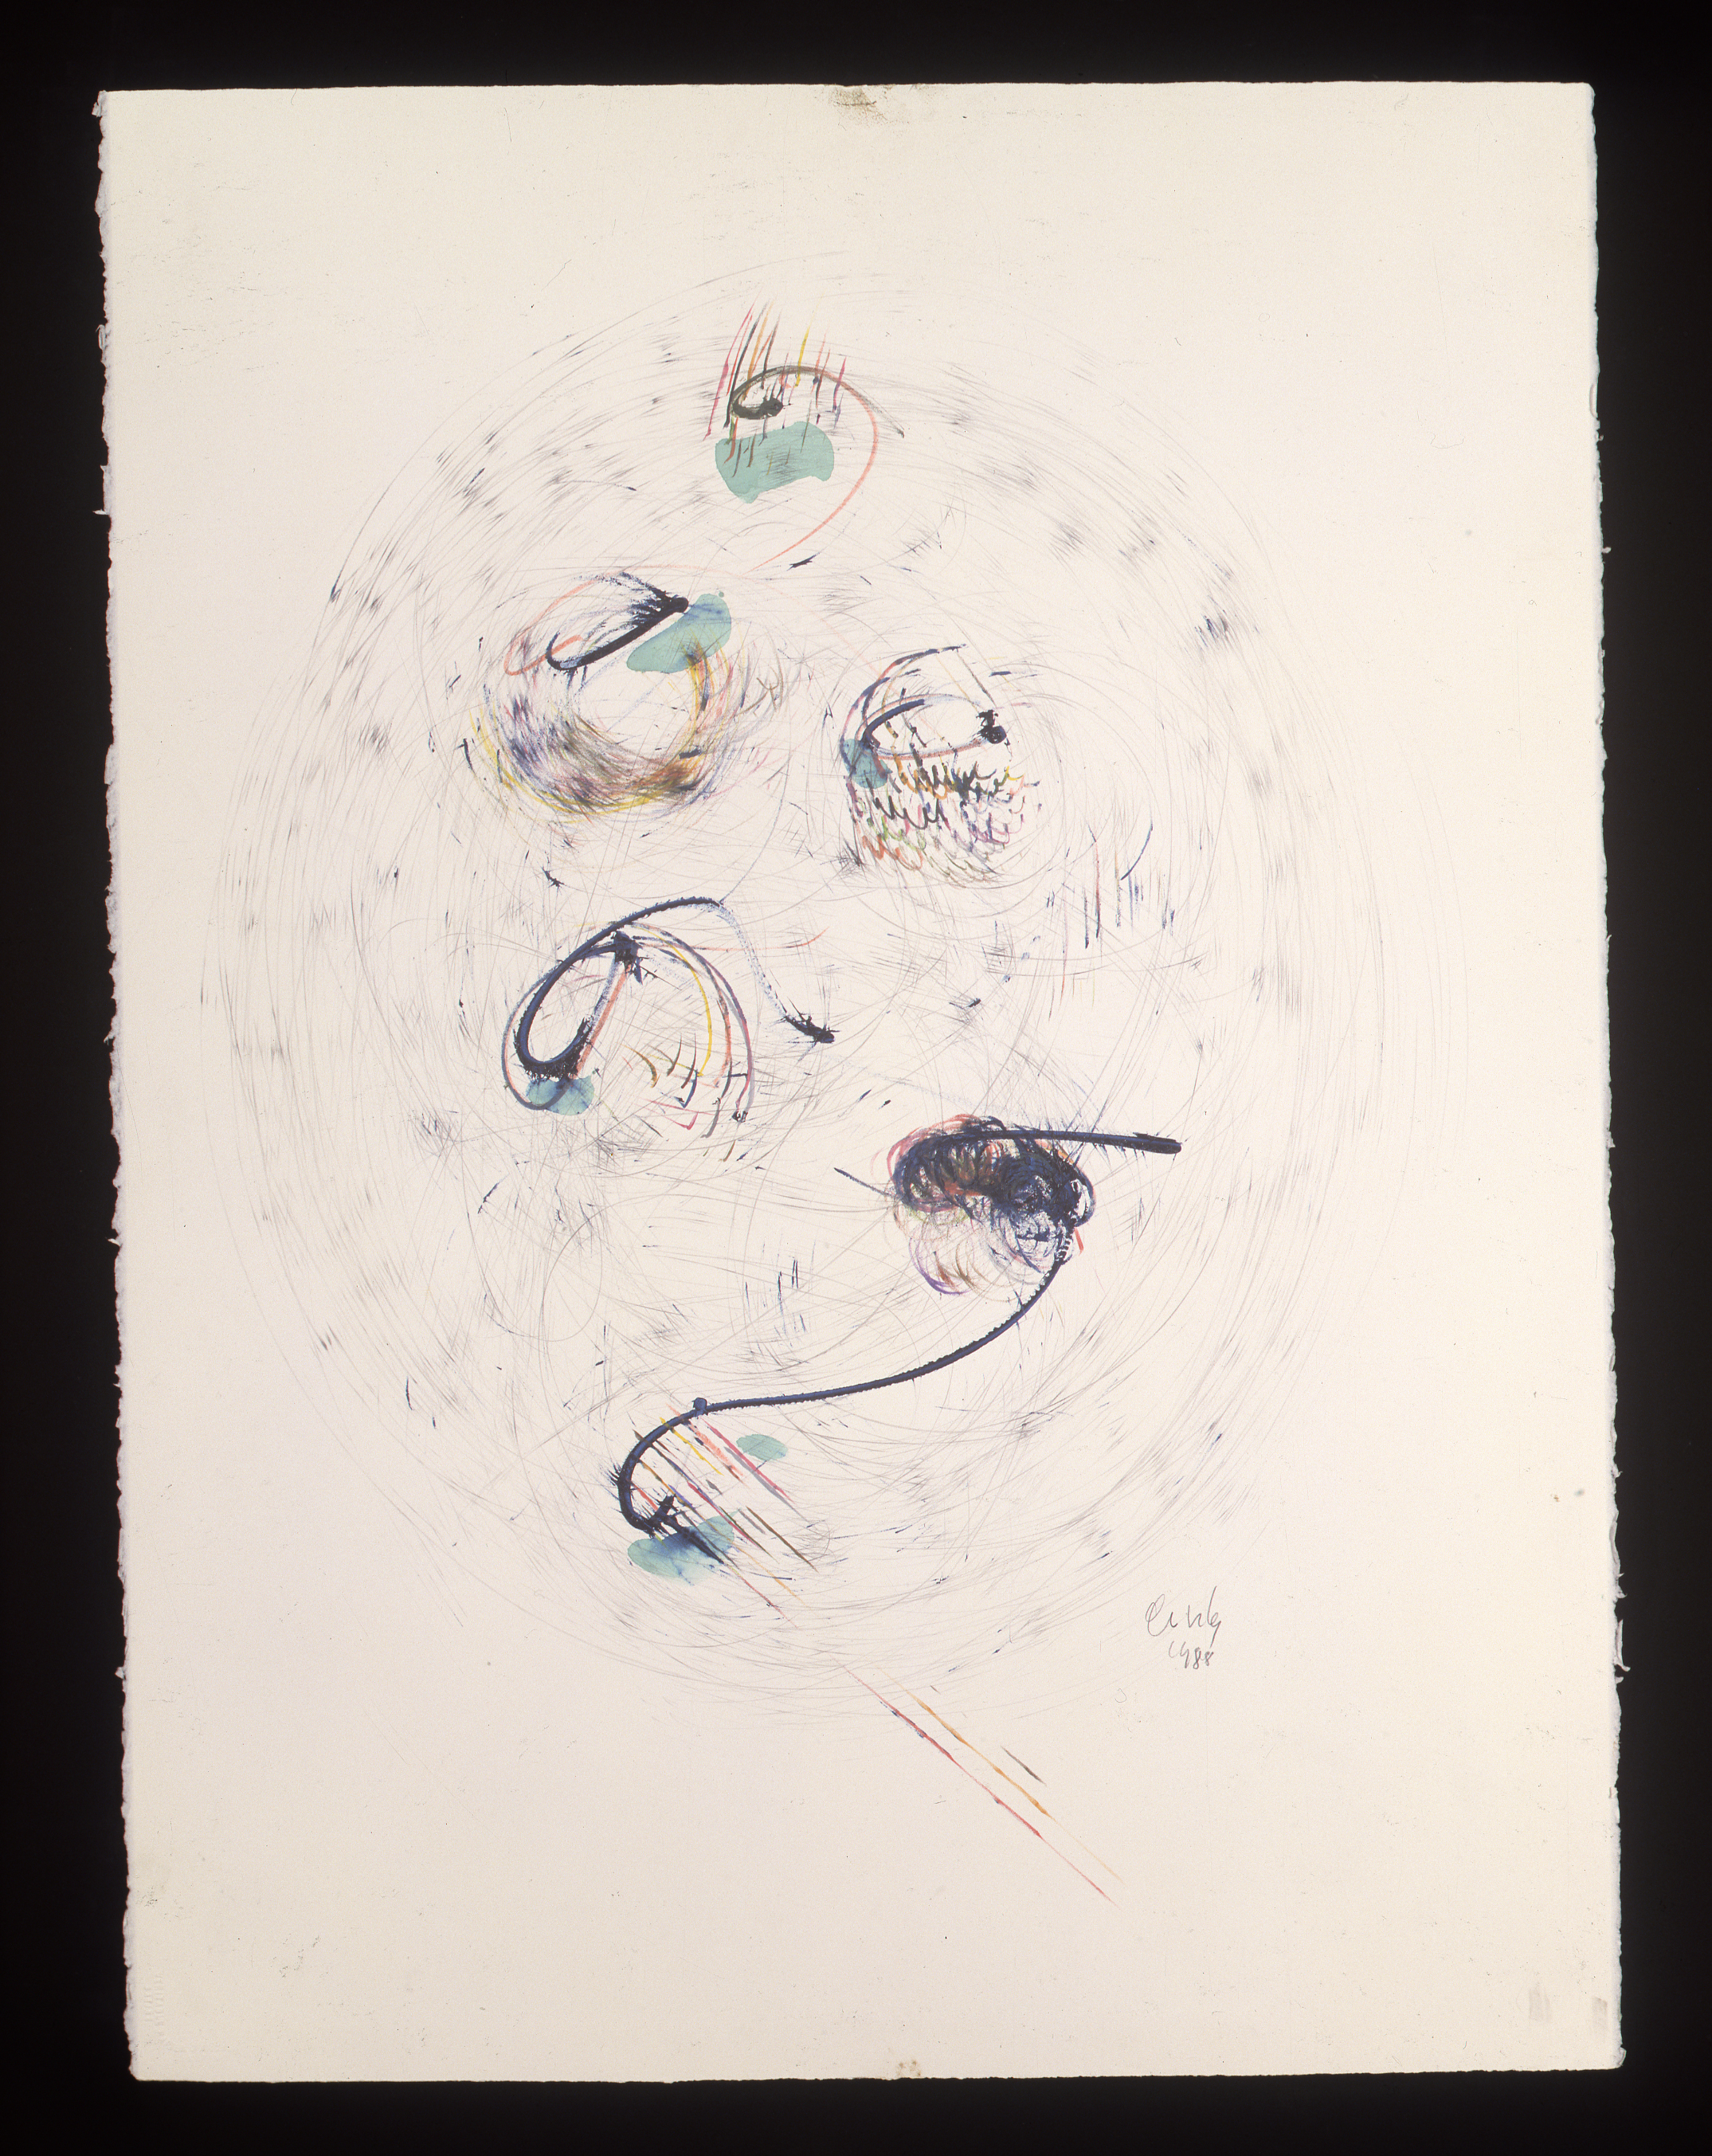 Dale Chihuly, Basket Drawing, (1988, mixed media on paper, 30 x 22 inches), DC.362